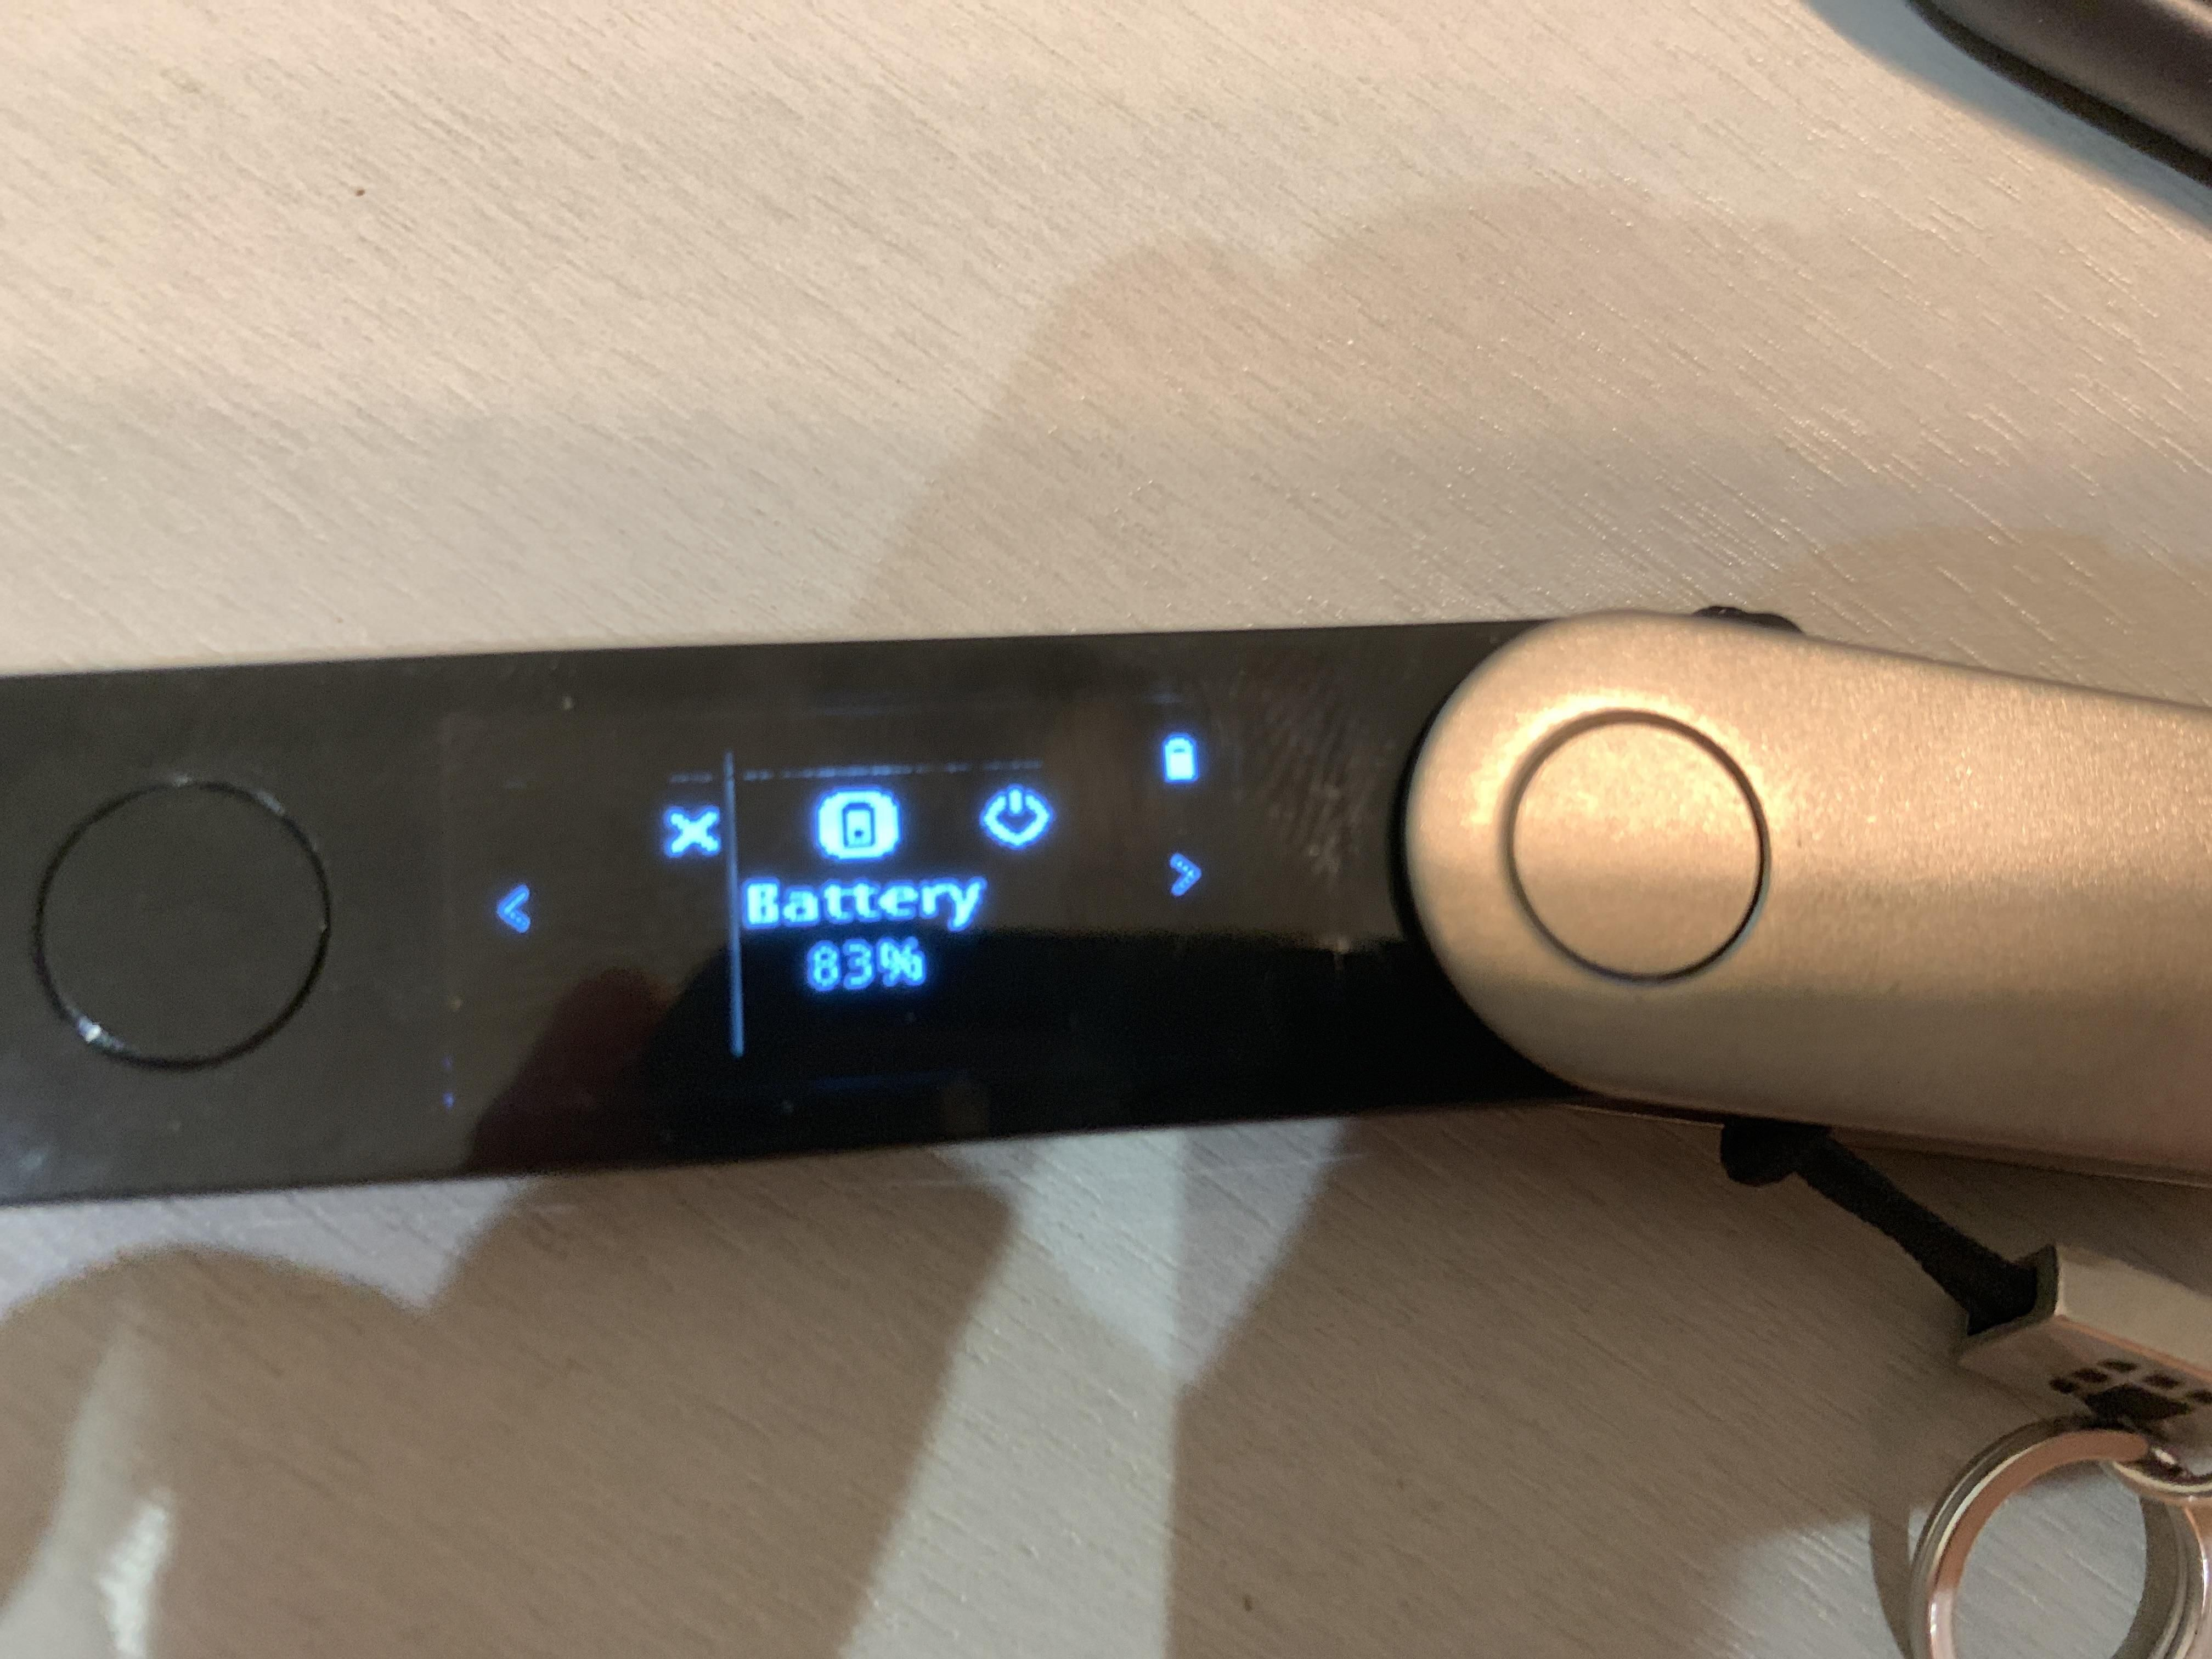 The Ledger Nano X is a Bluetooth enabled secure device